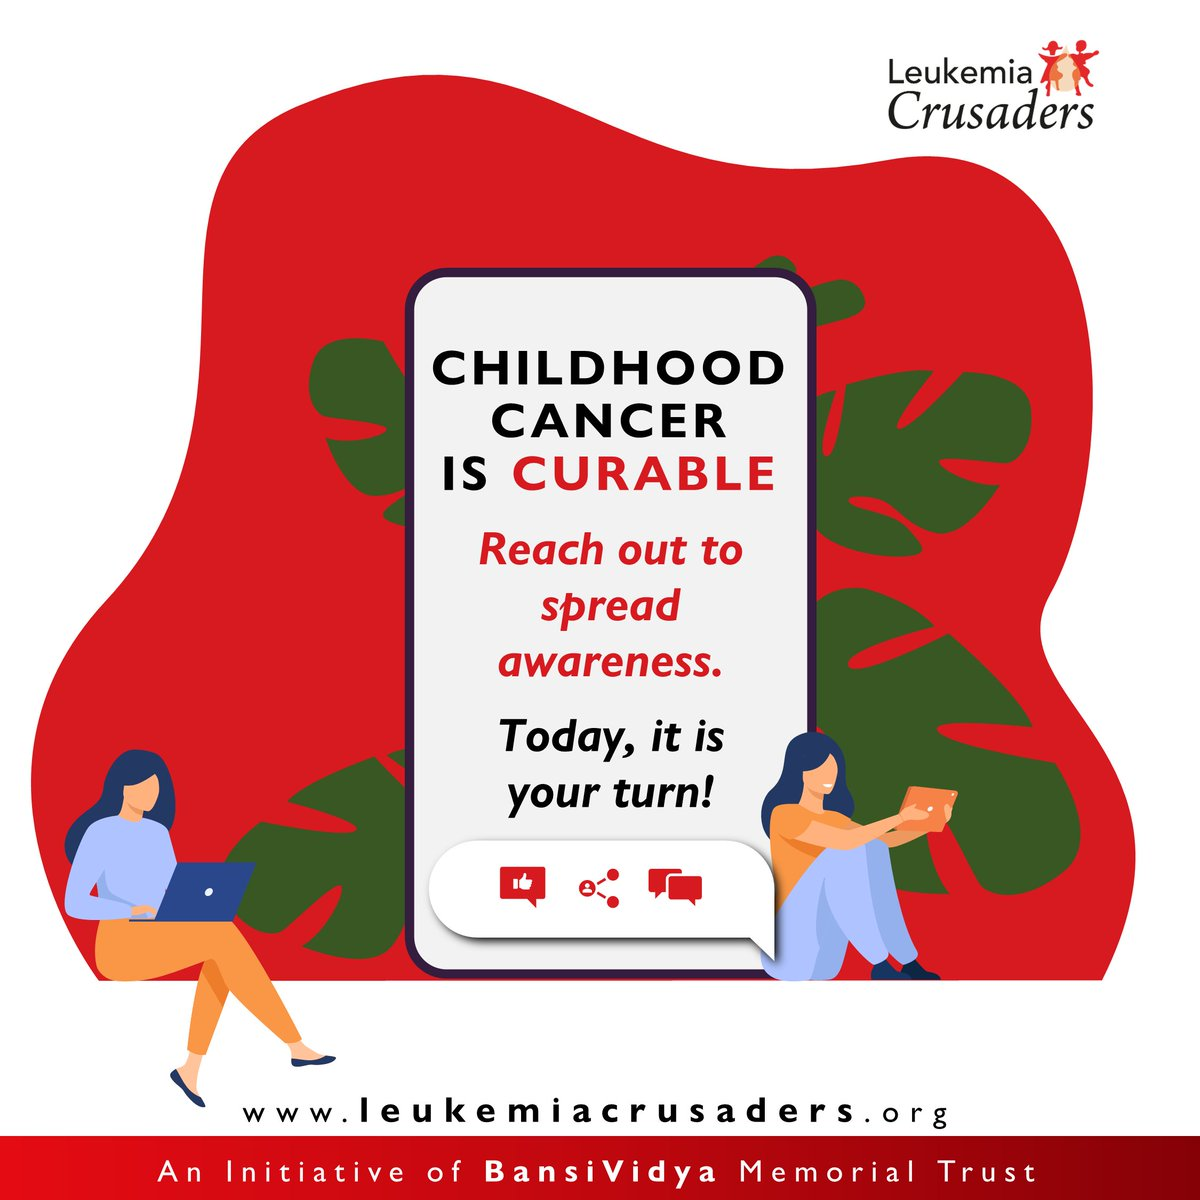 Spread awareness! Help us in fighting Leukemia. You and your social connection can really make a difference. #leukemia  #awerness #kids  #help  #reach #happy  #empowering #charity  #donations  #future